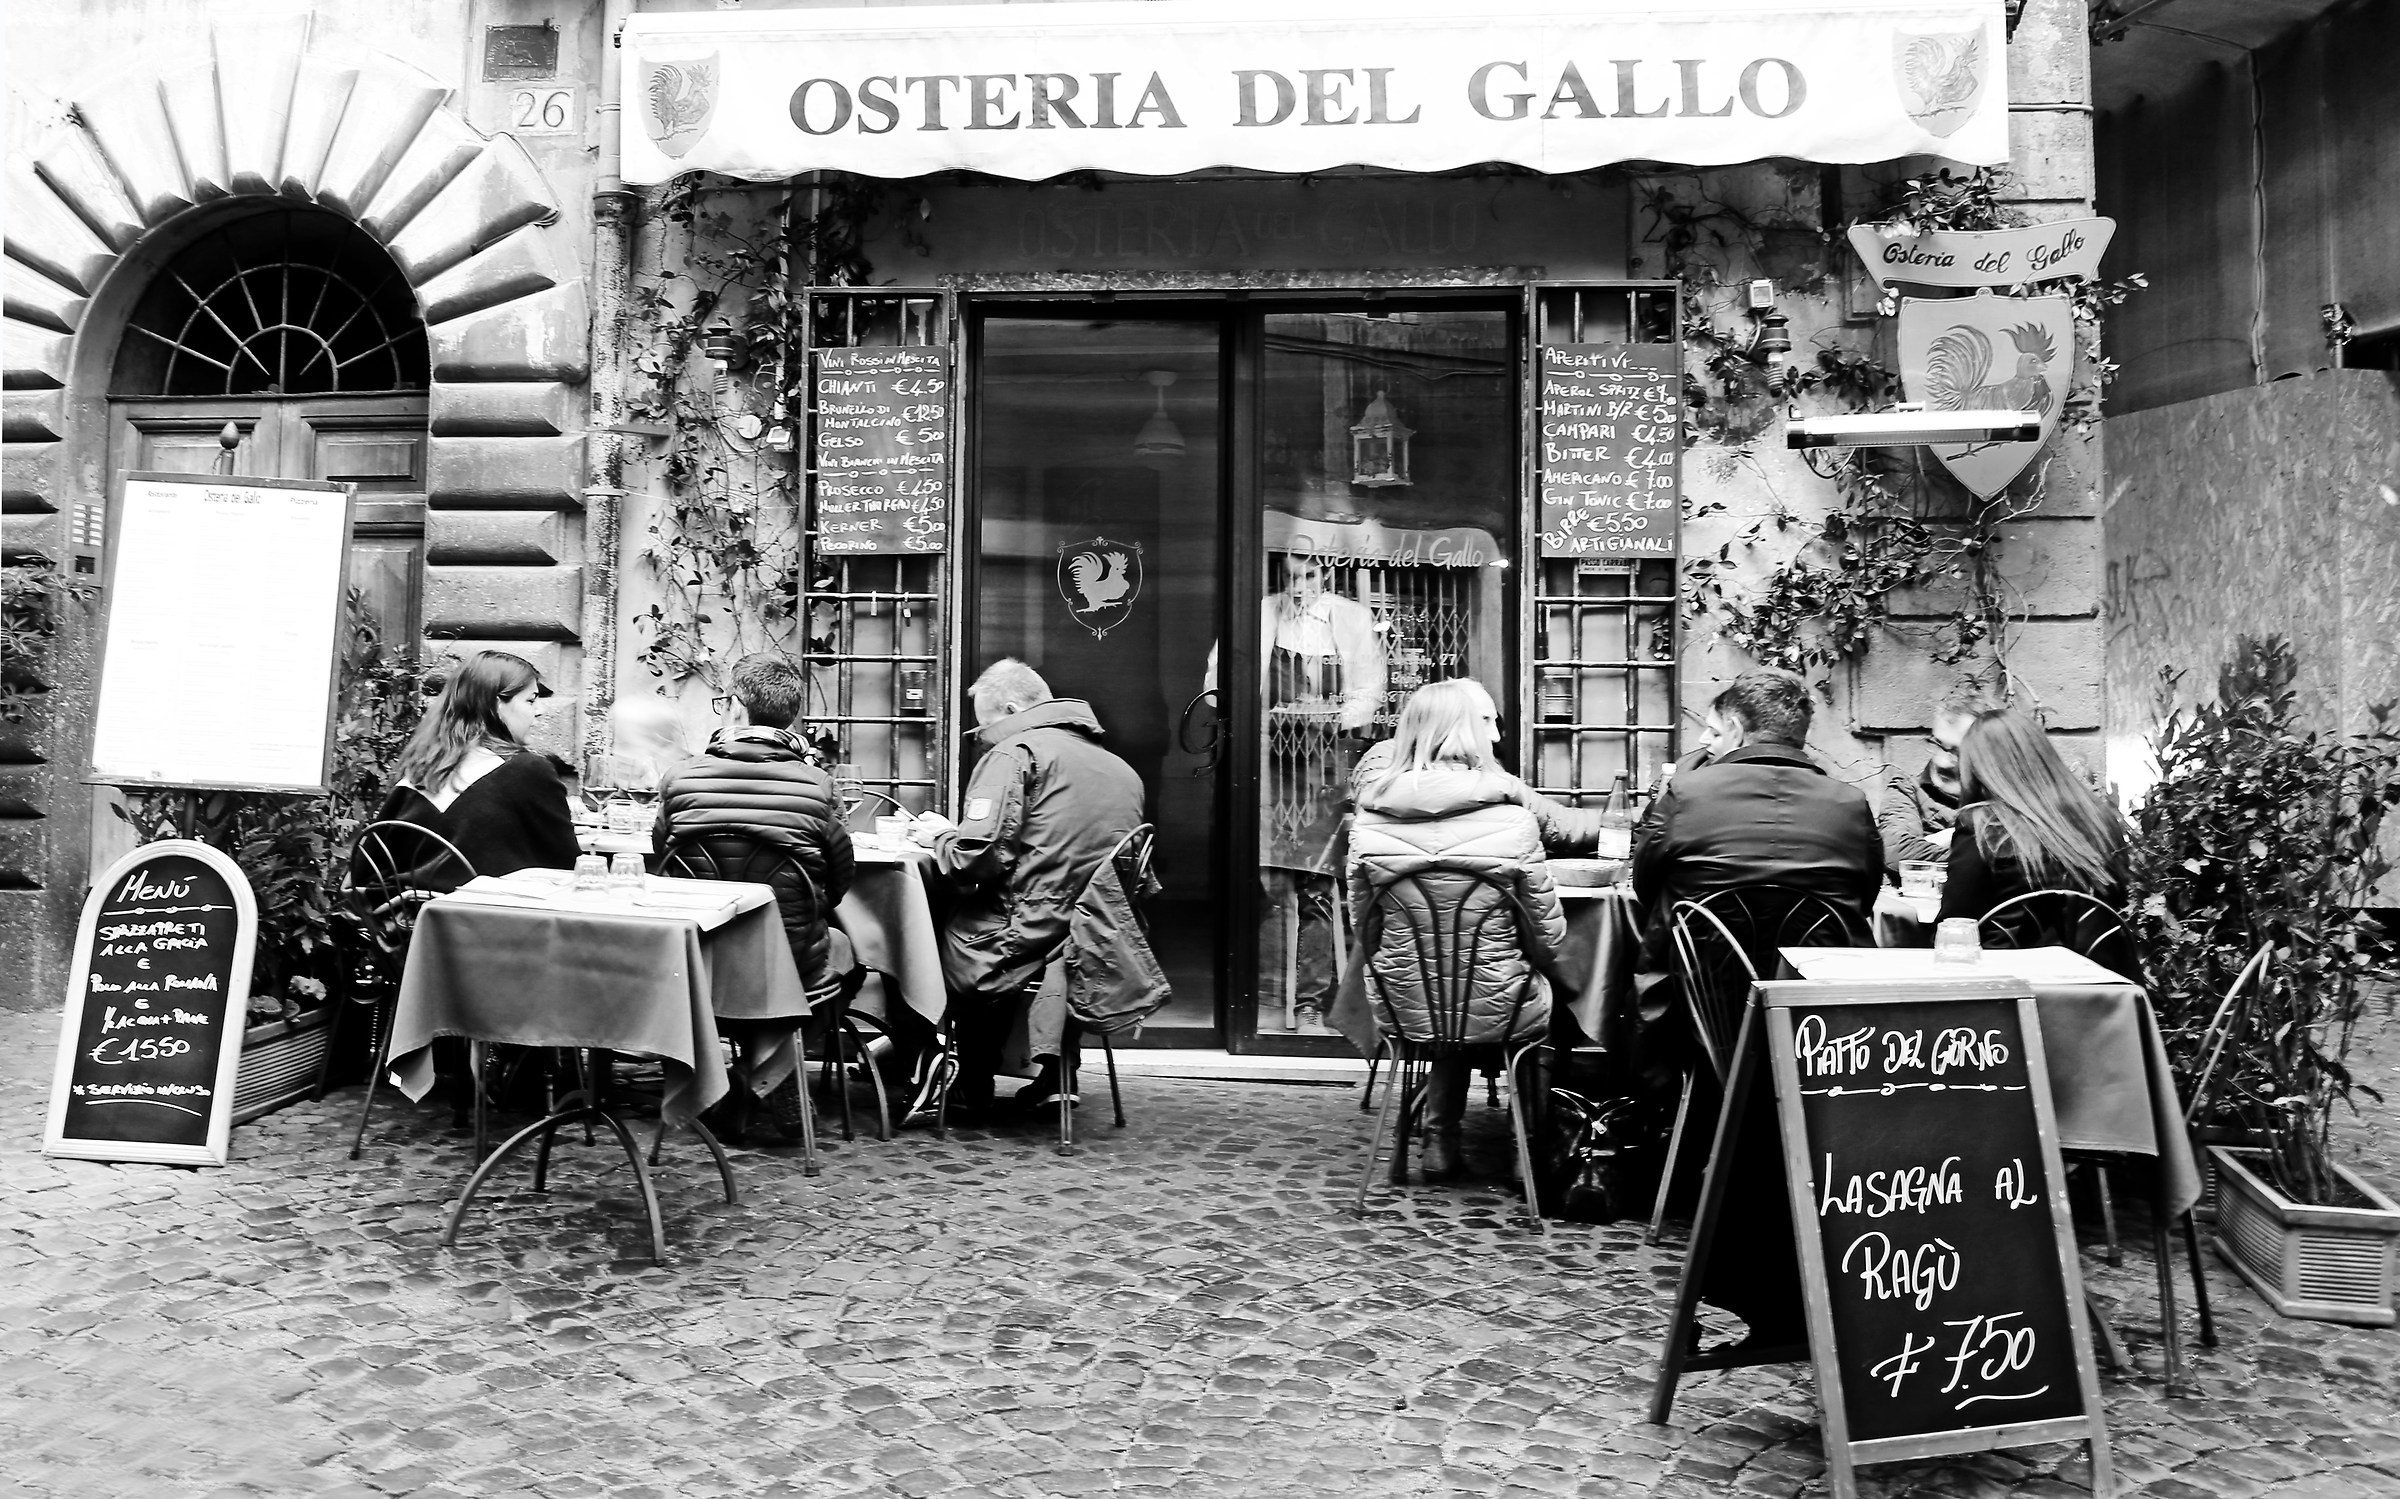 That old trattoria in the heart of Rome...